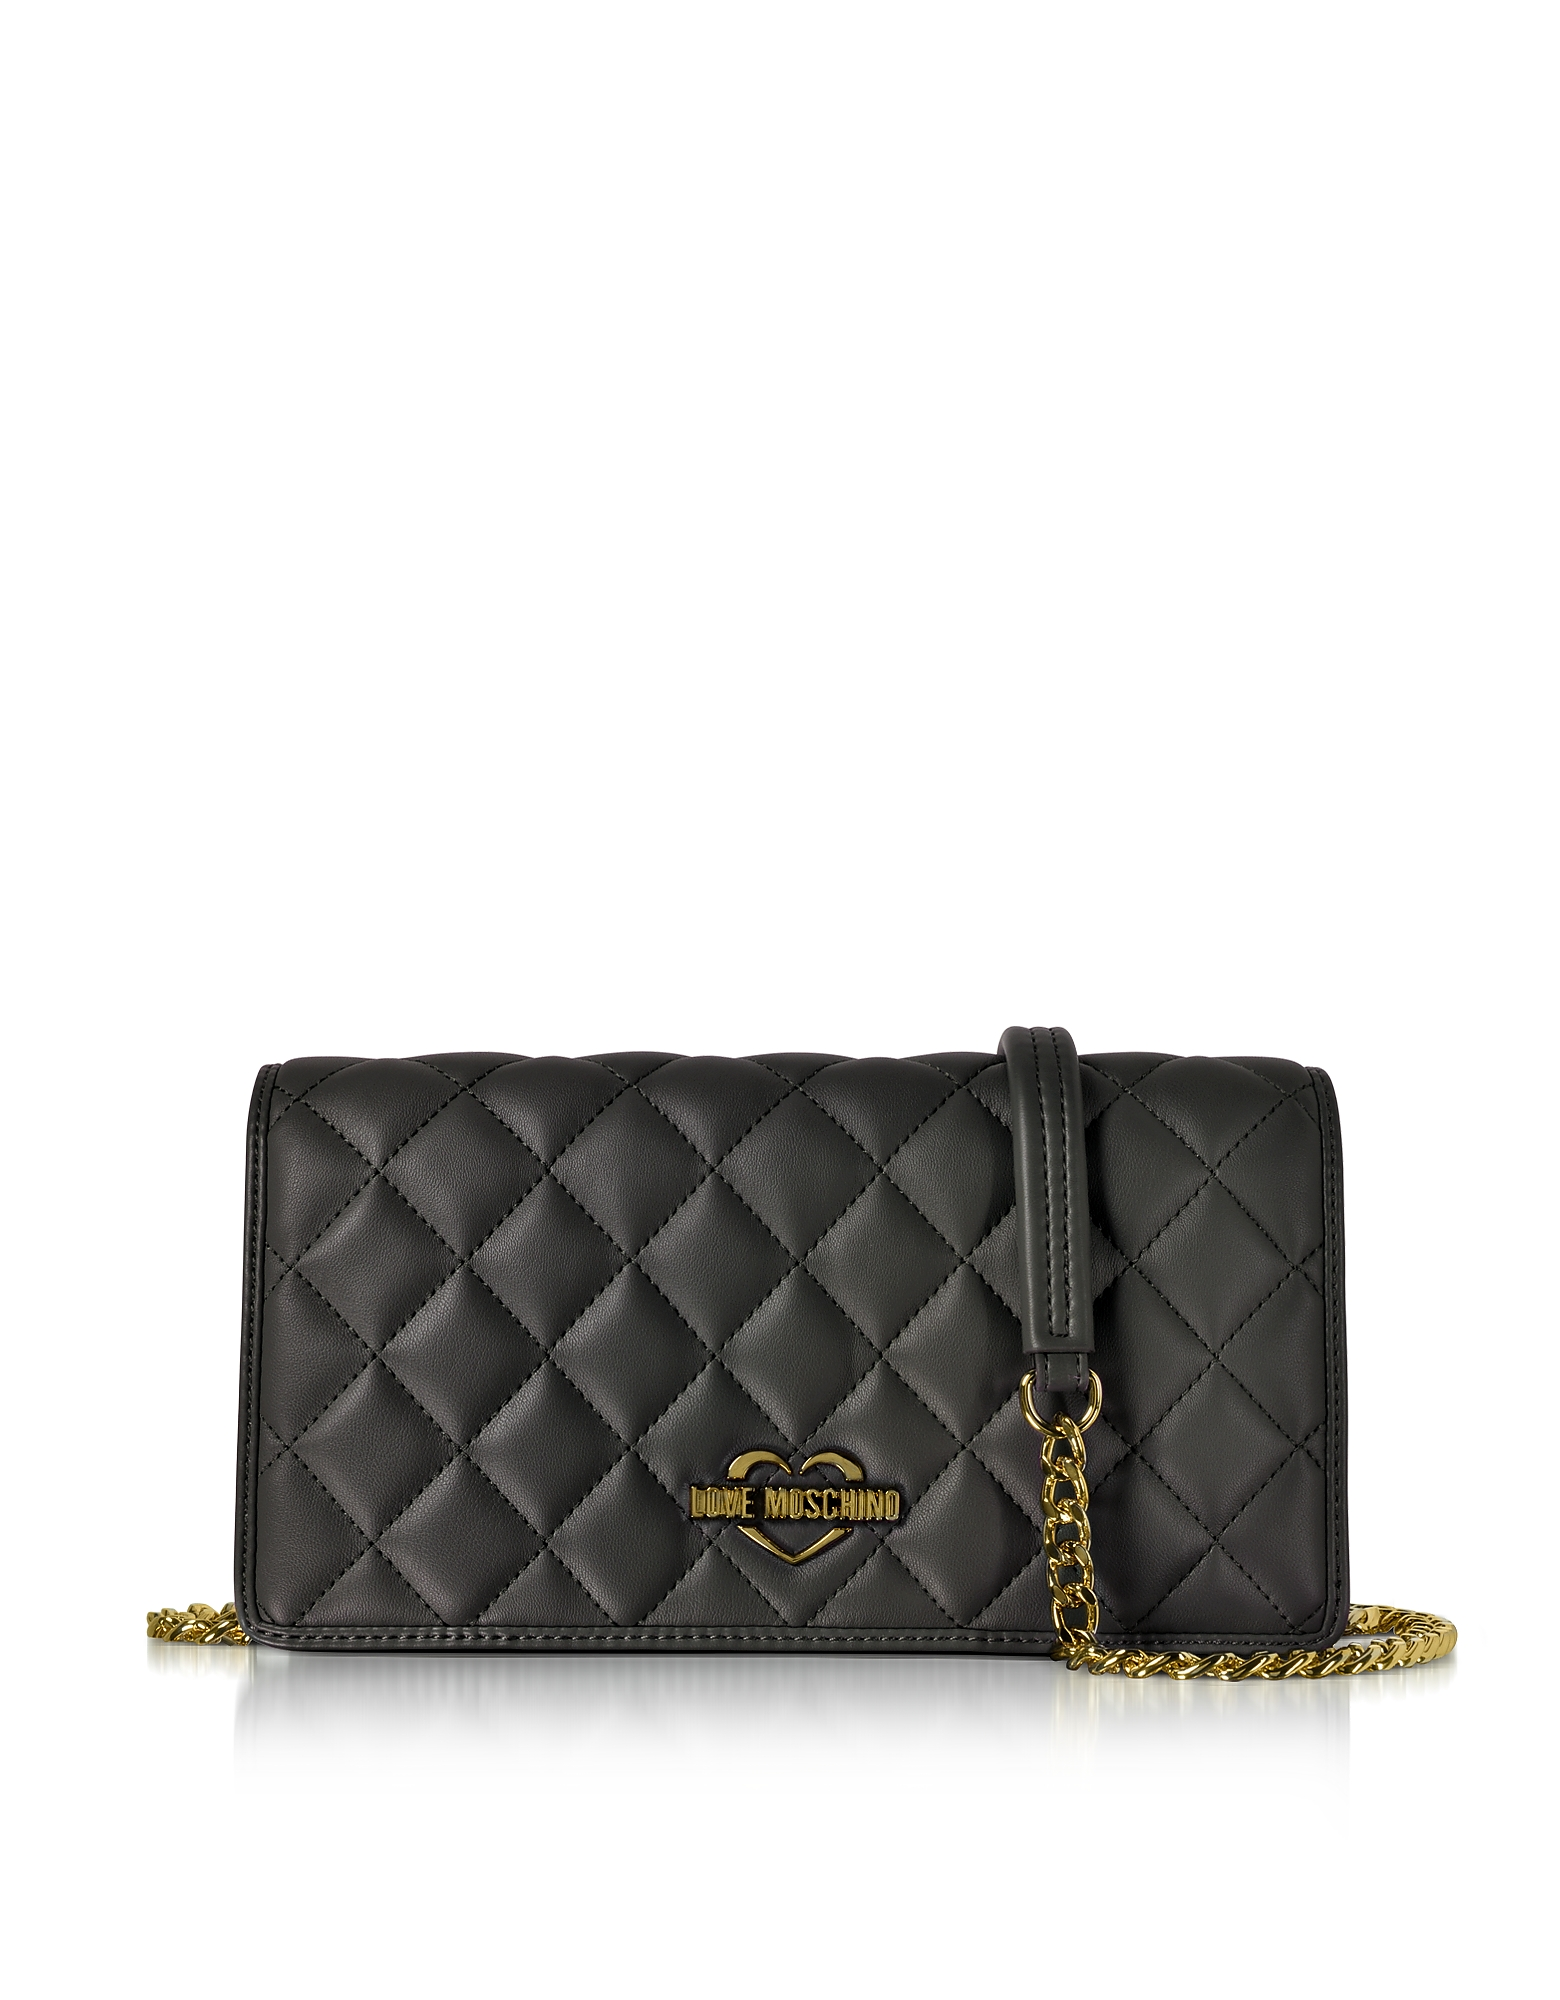 Love Moschino Handbags, Black Superquilted Eco-Leather Clutch w/Shoulder Strap